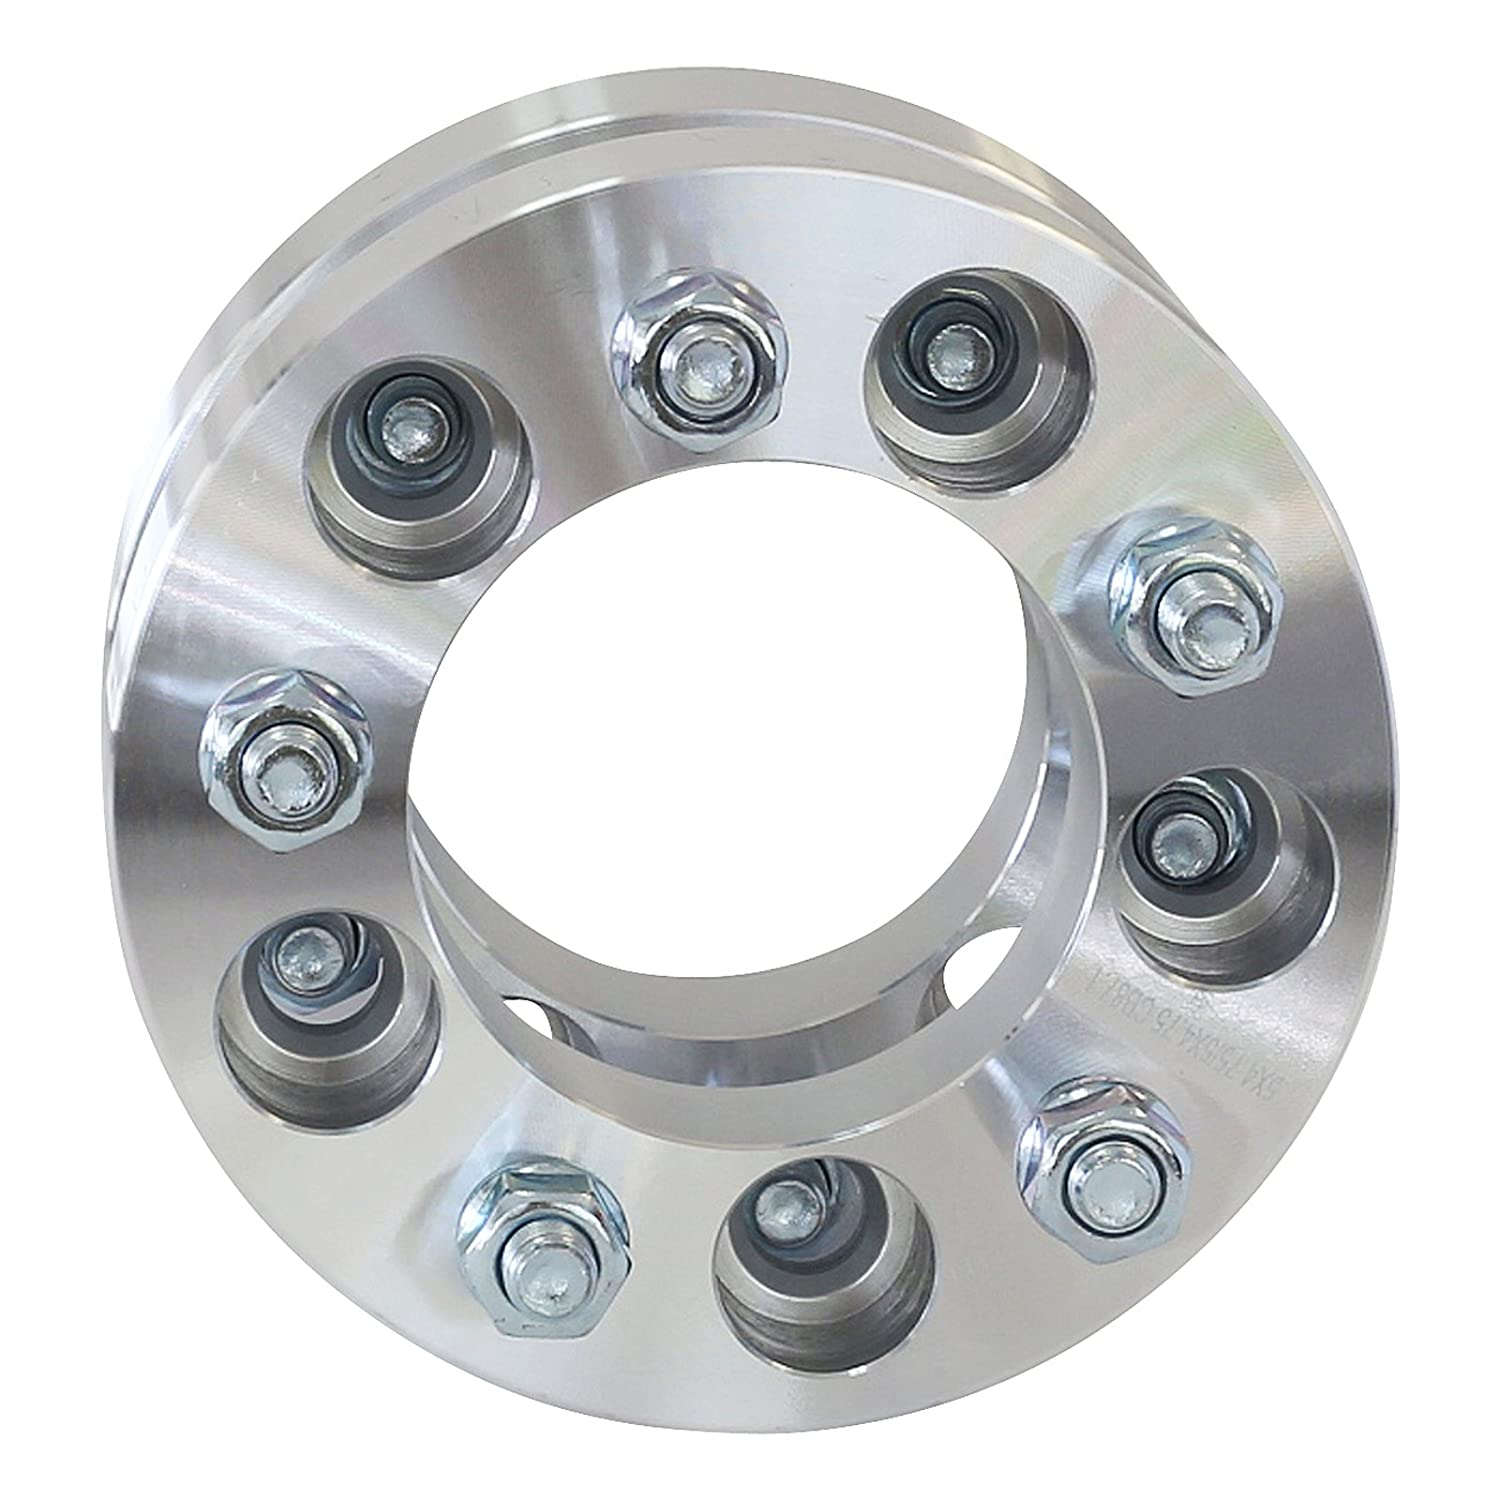 2 inch Per Side fits all 5x4.75 vehicle to 5x4.75 wheel patterns with M12 x 1.5 threads 4 QTY Wheel Spacers Adapters 4